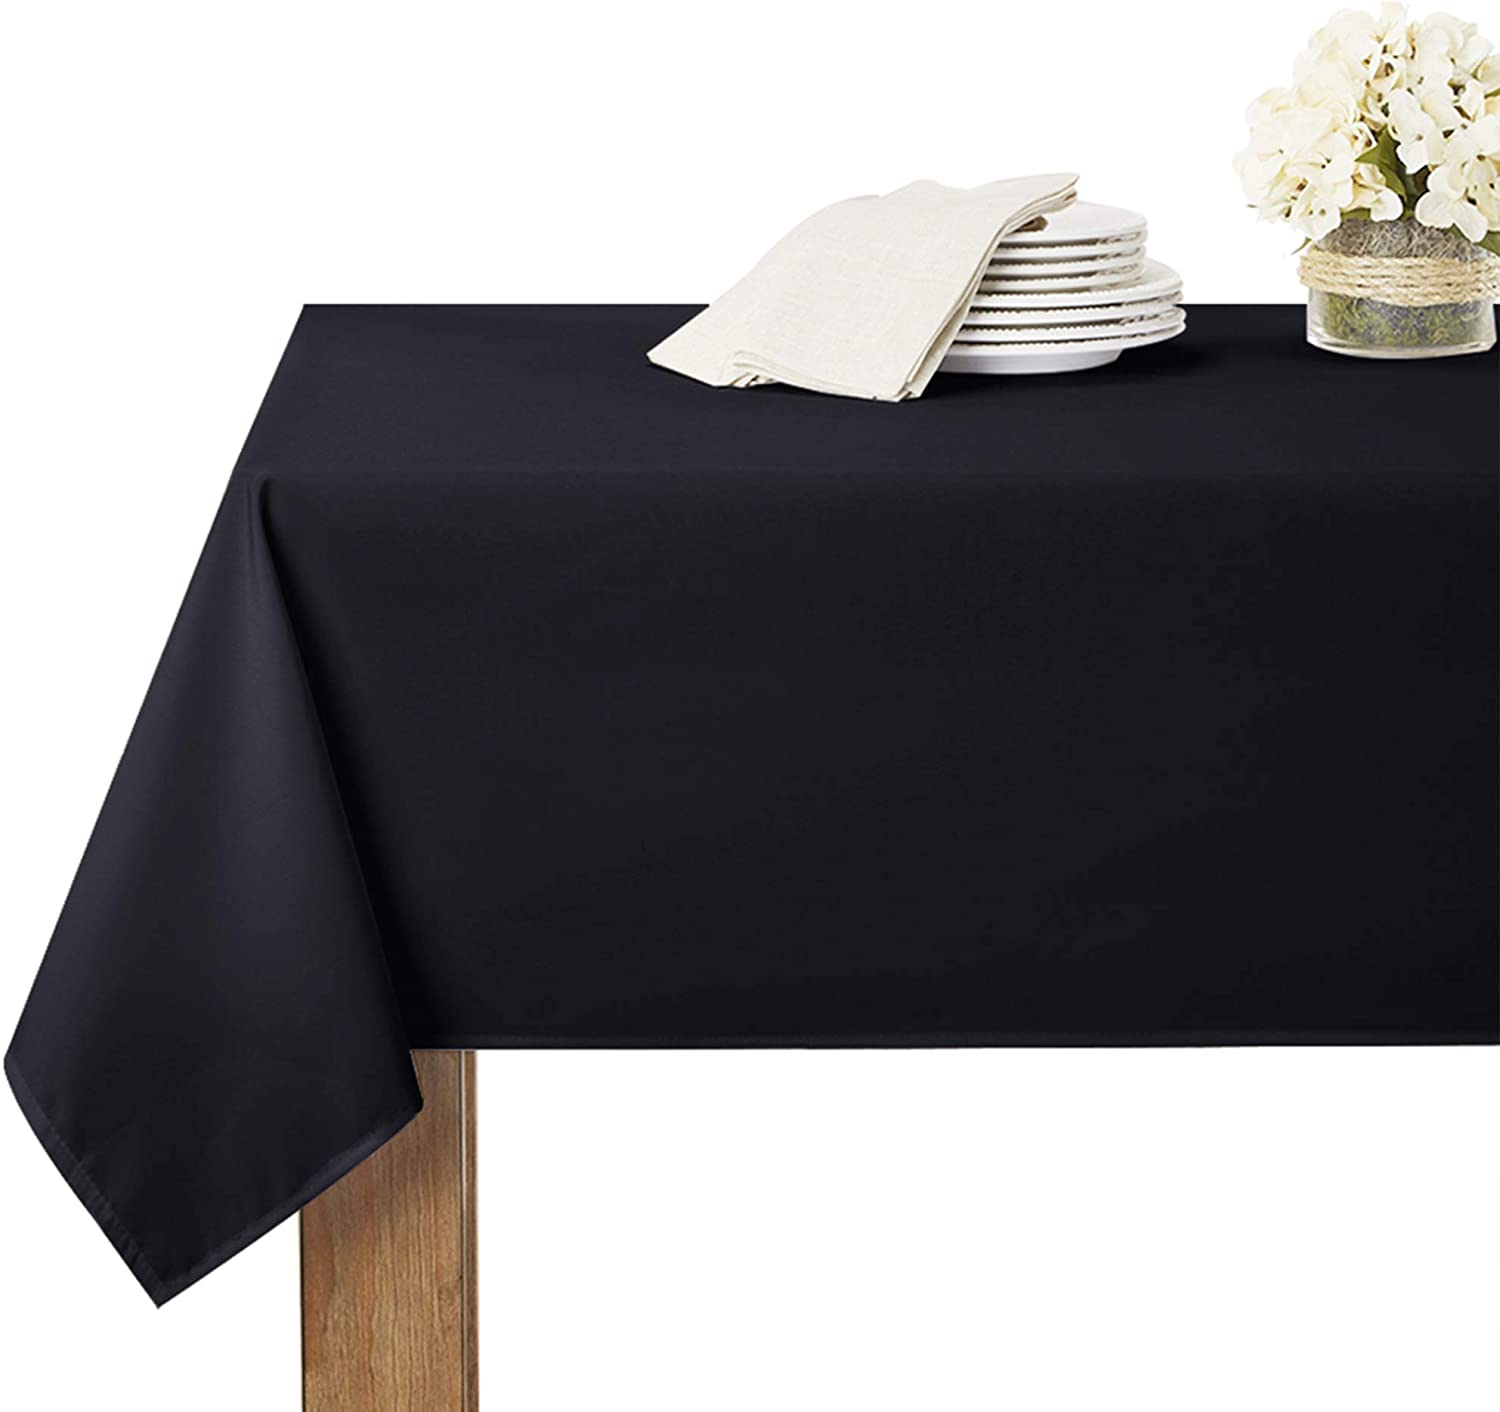 RYB HOME Table Cloth Spill-Proof - Rectangle Tablecloth Elegant Decor Washable Fabric Tabletop Cover for Dining Ceremony Venue Buffet Indoor Outdoor Use, 60 x 90, Black